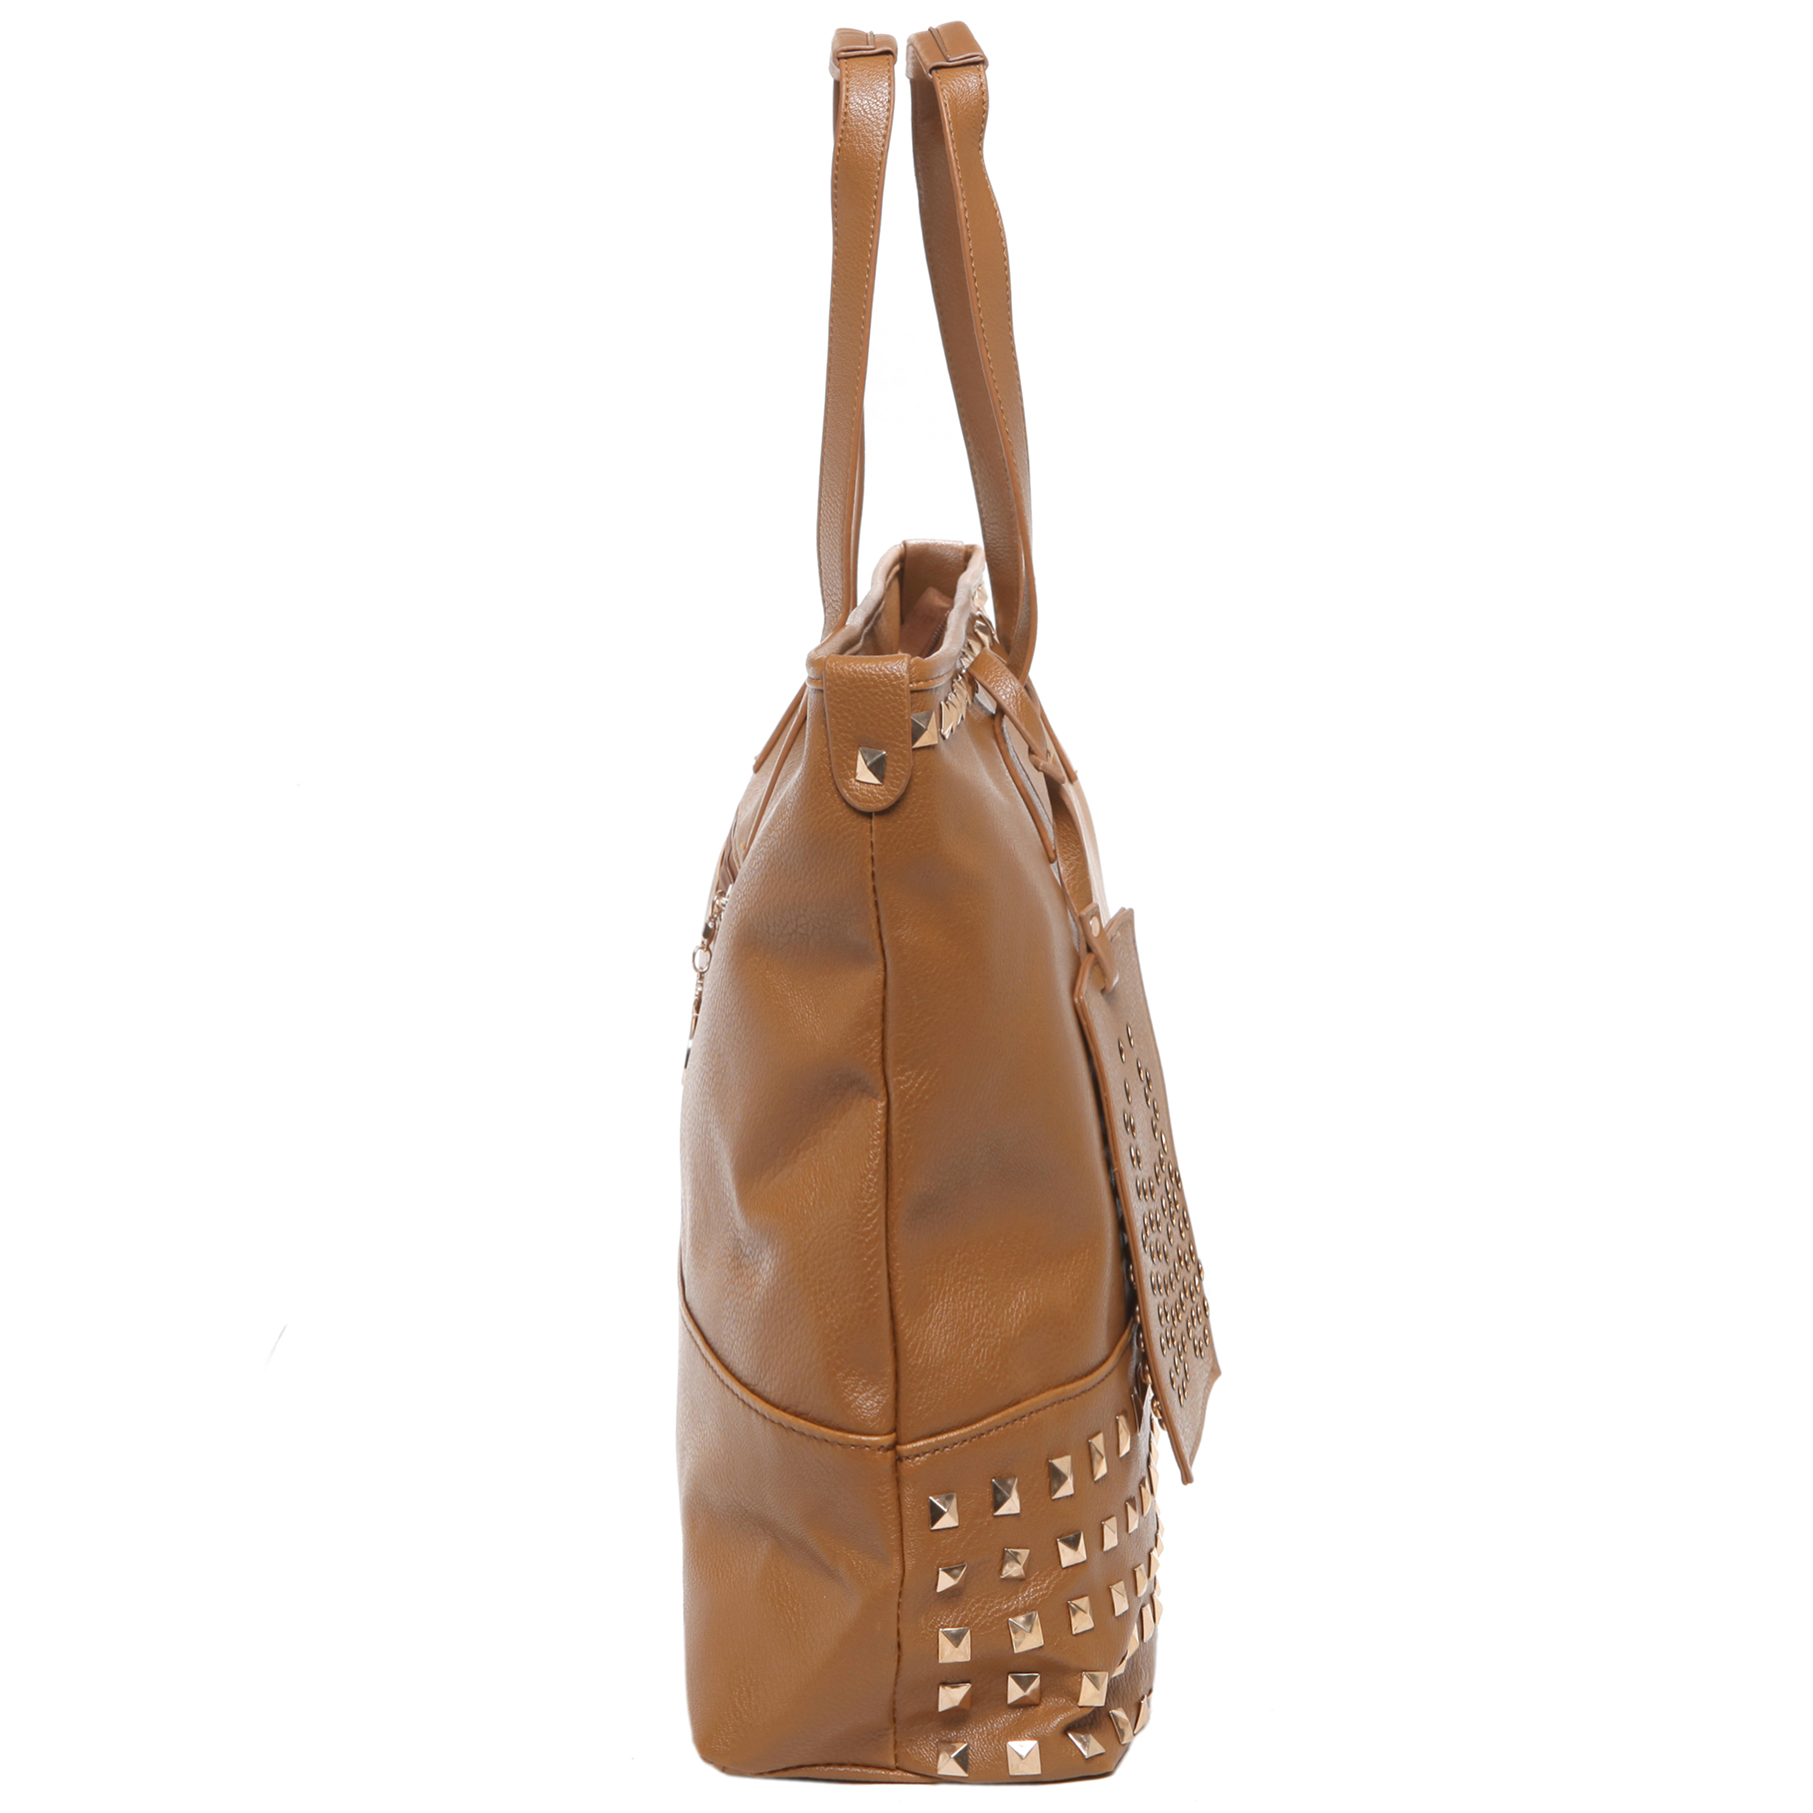 mg-collection-cosette-gothic-studded-shopper-tb-h0418kha-3.jpg